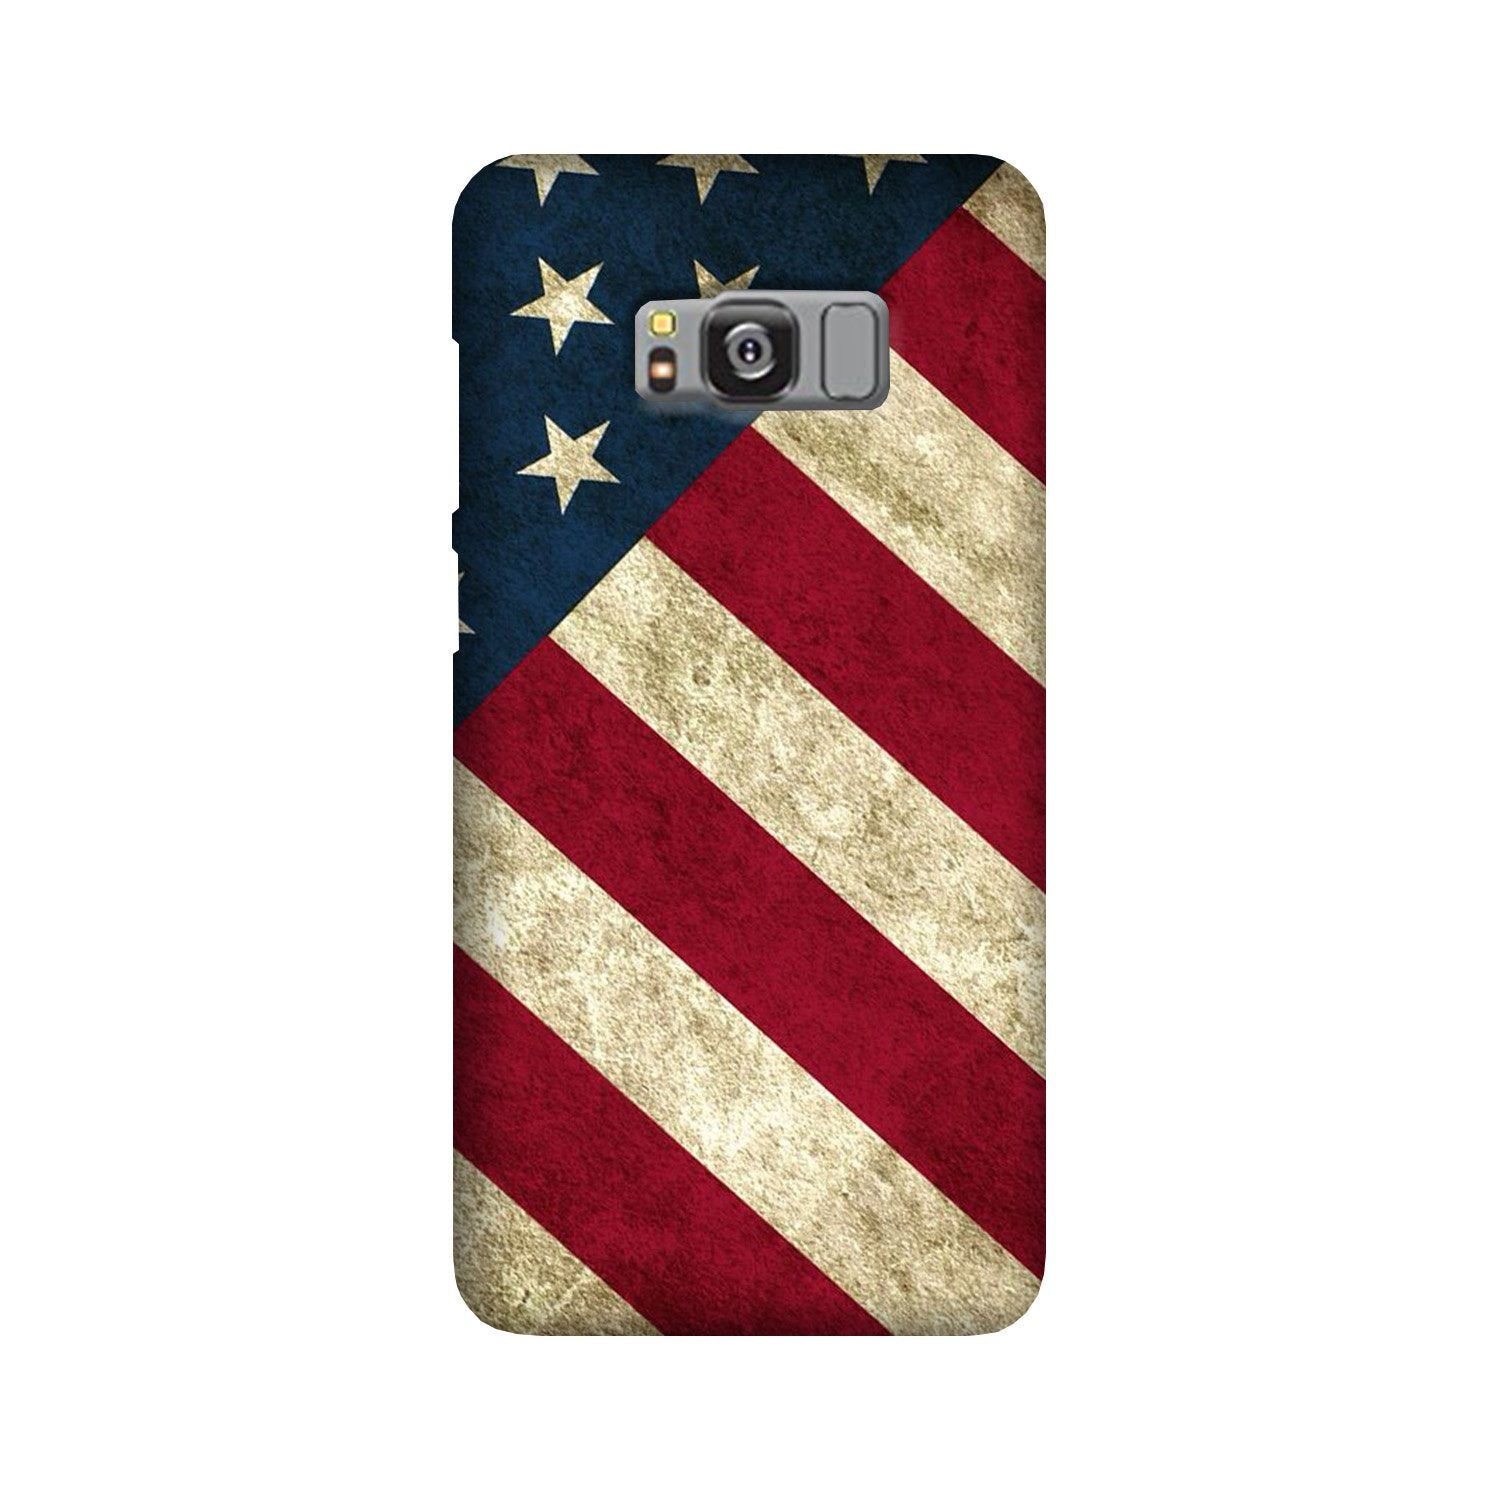 America Case for Galaxy S8 Plus